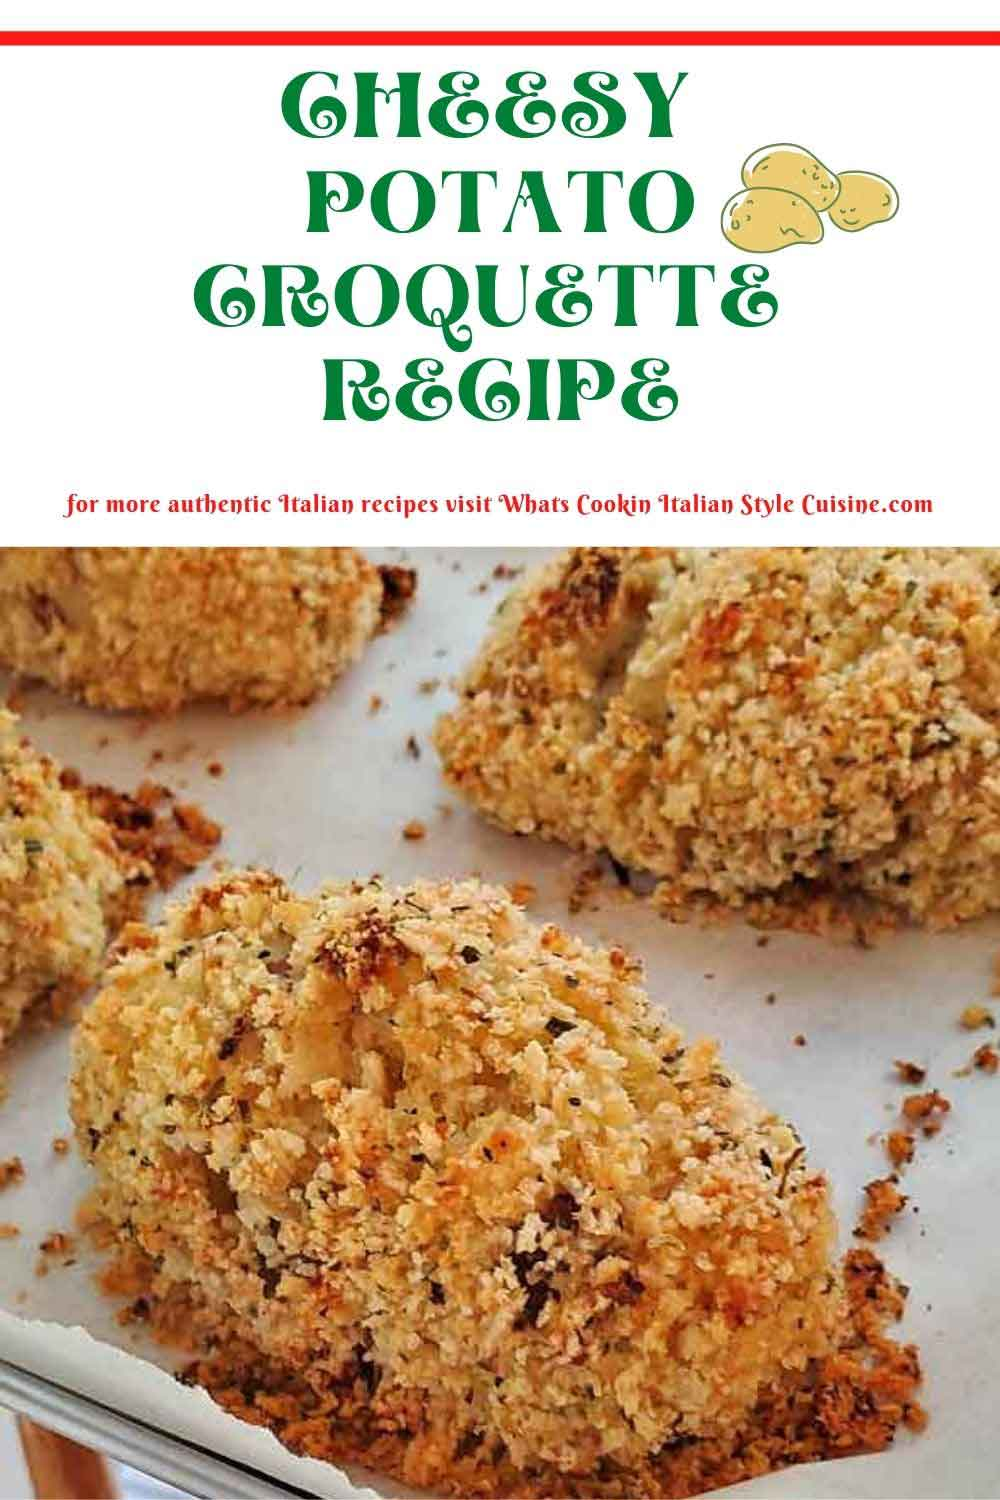 this is a pin on how to make potato croquettes